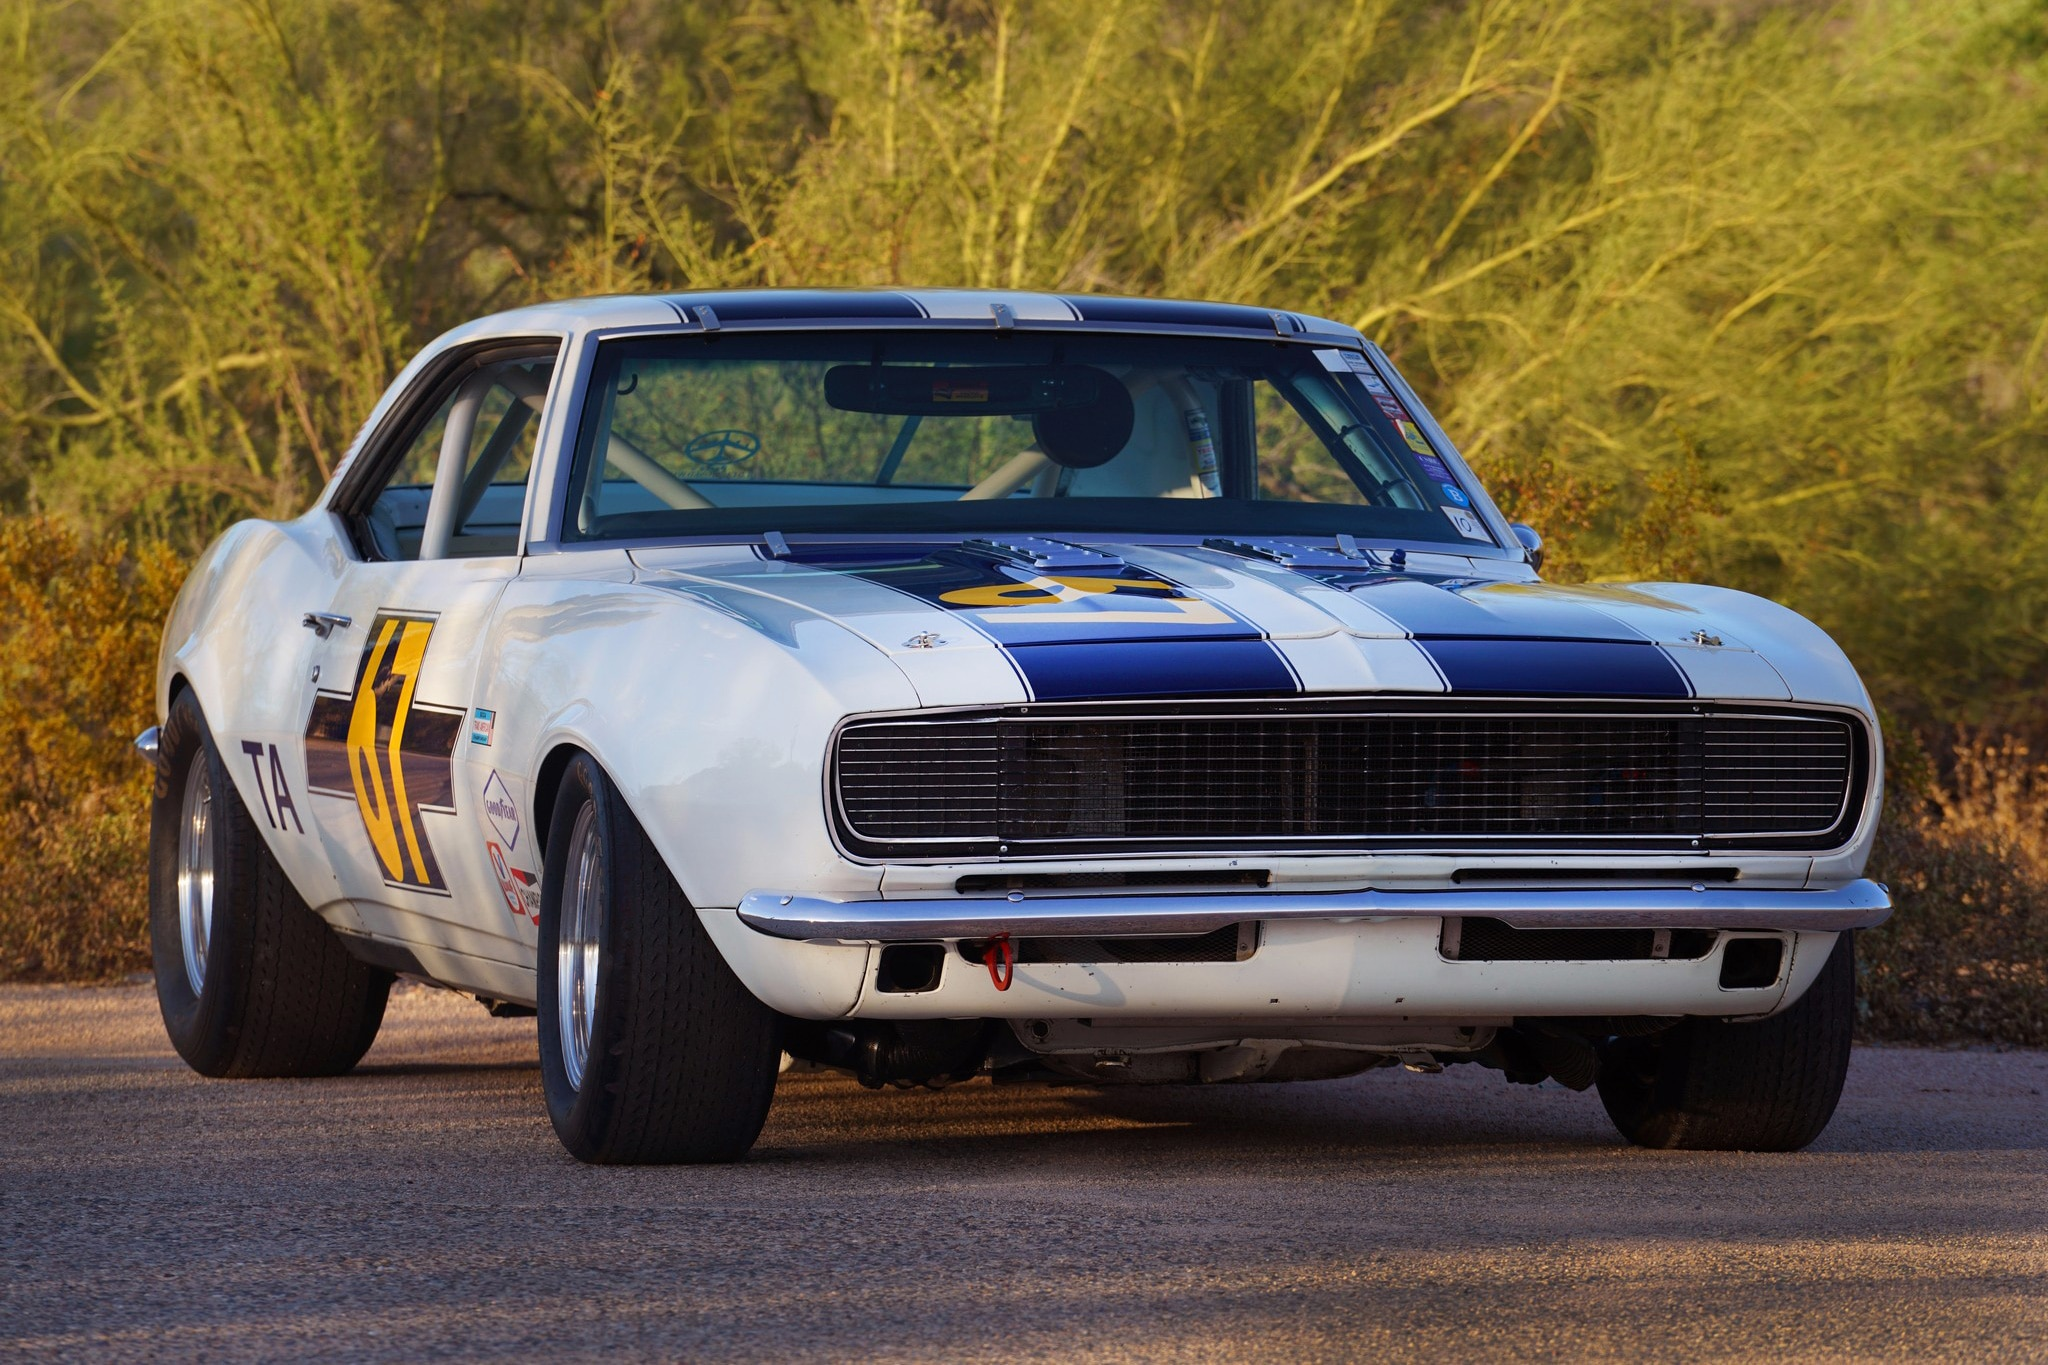 Buy This Trans Am 1968 Chevrolet Camaro And Race At Mmr Automobile Ad Conner Golden